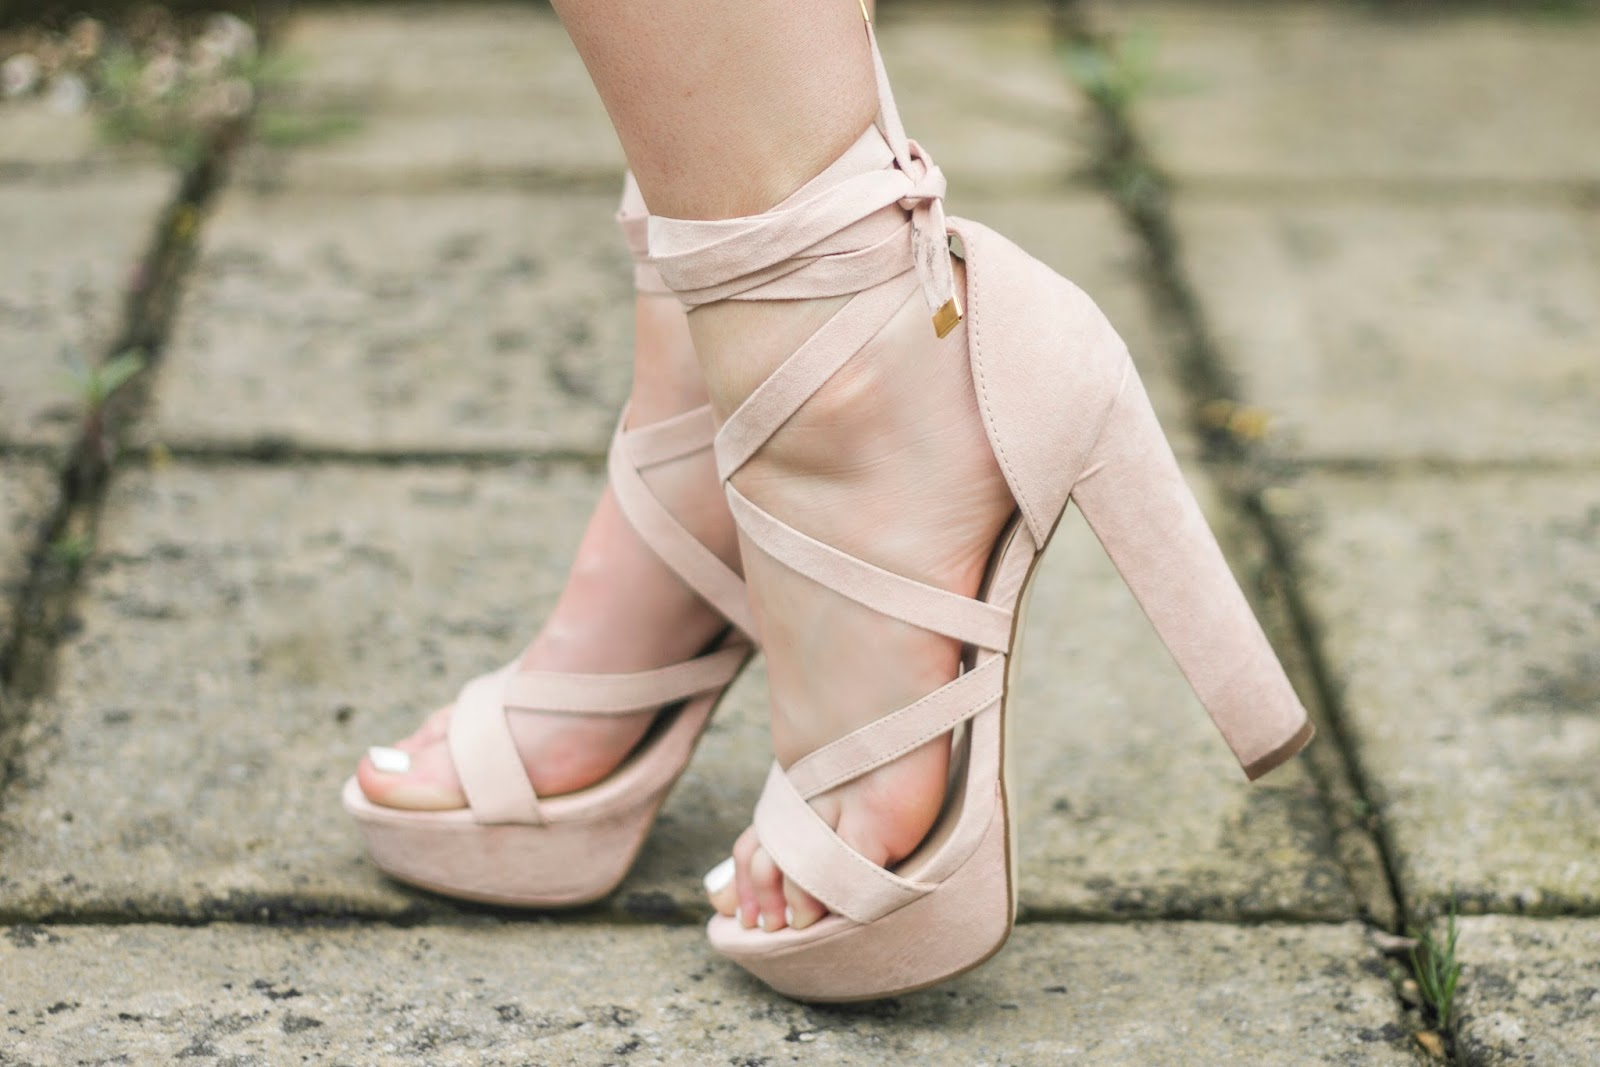 8a37bdd8d20 Pink Tie-Up Platform Heels By River Island